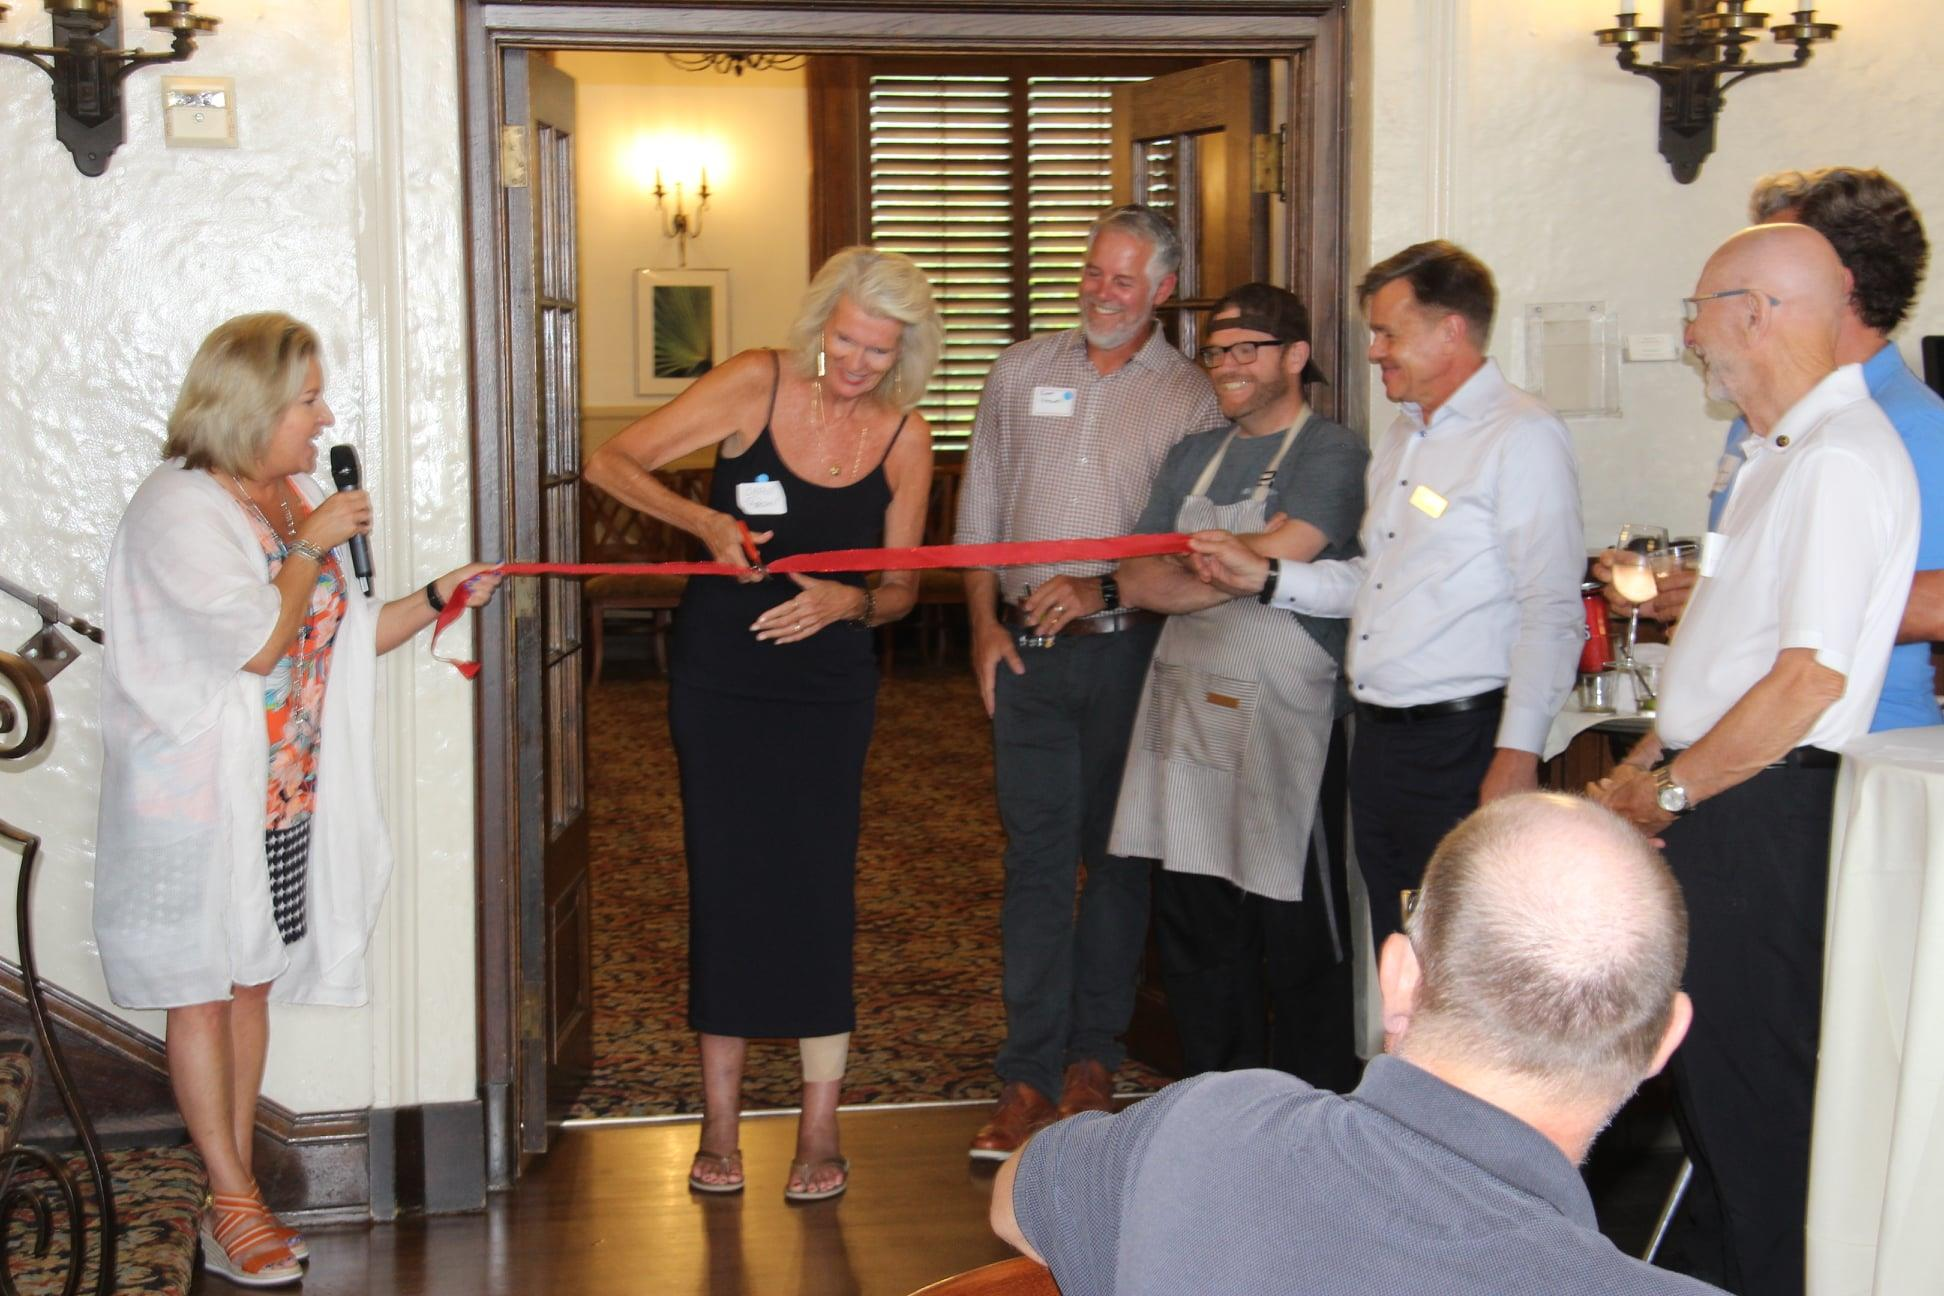 Carol Russell performs the ribbon-cutting, officially inaugurating City of Lakes at the Woman's Club of Minneapolis